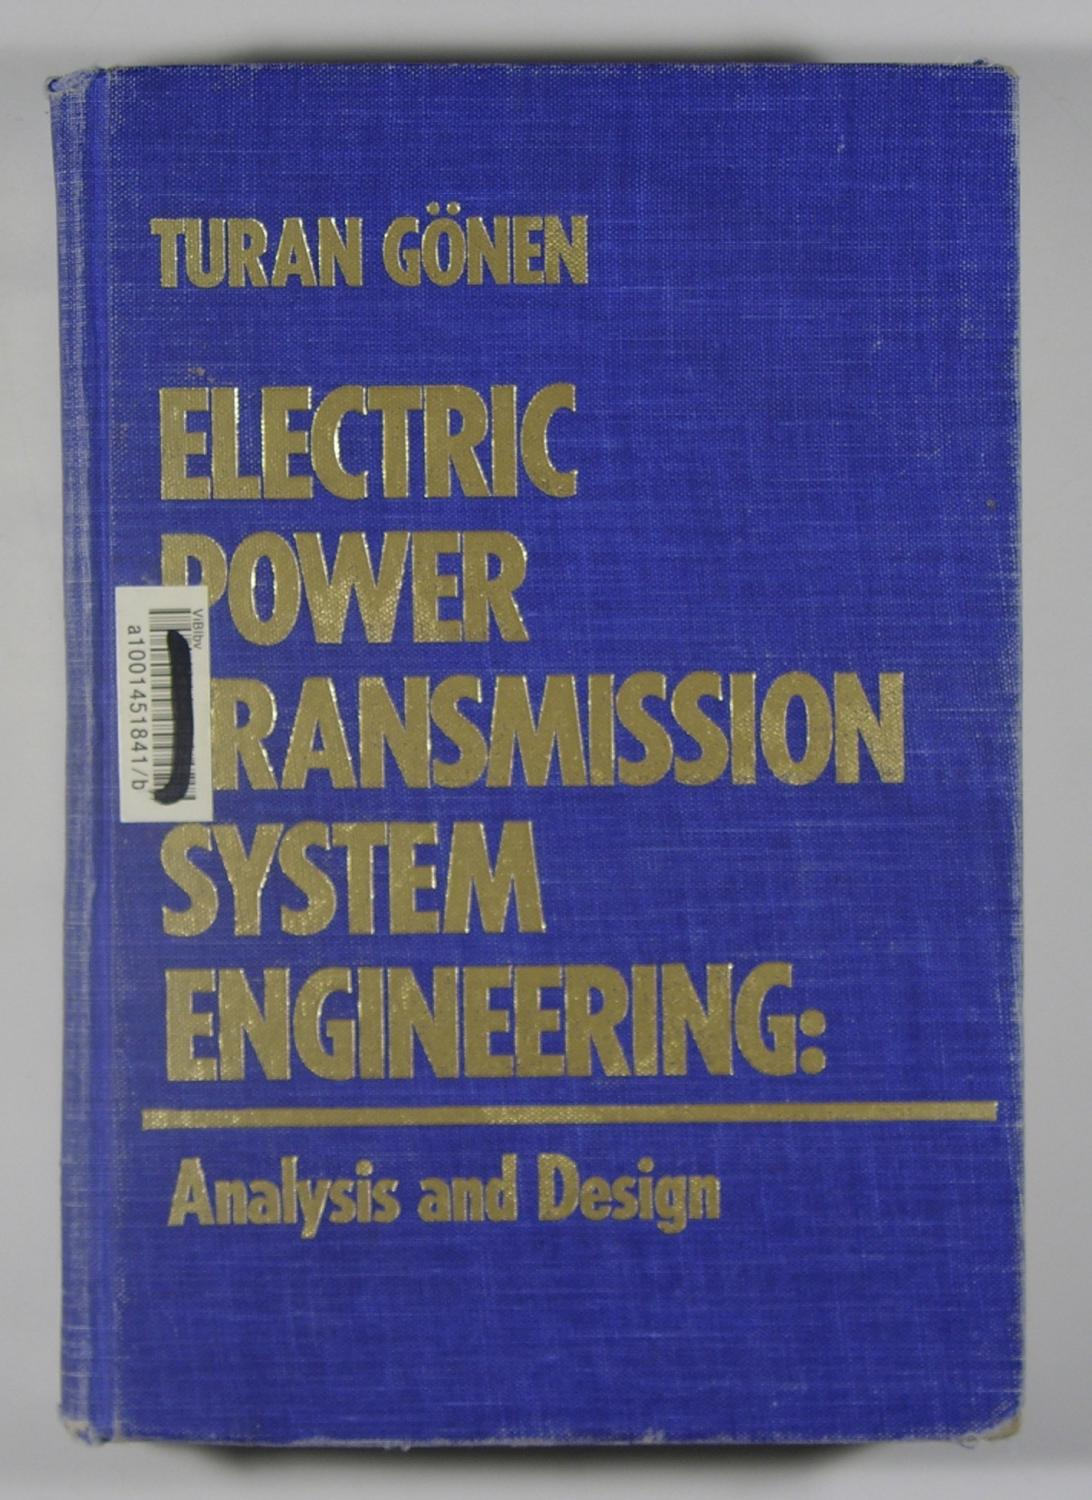 Underground Transmission Systems Reference Book